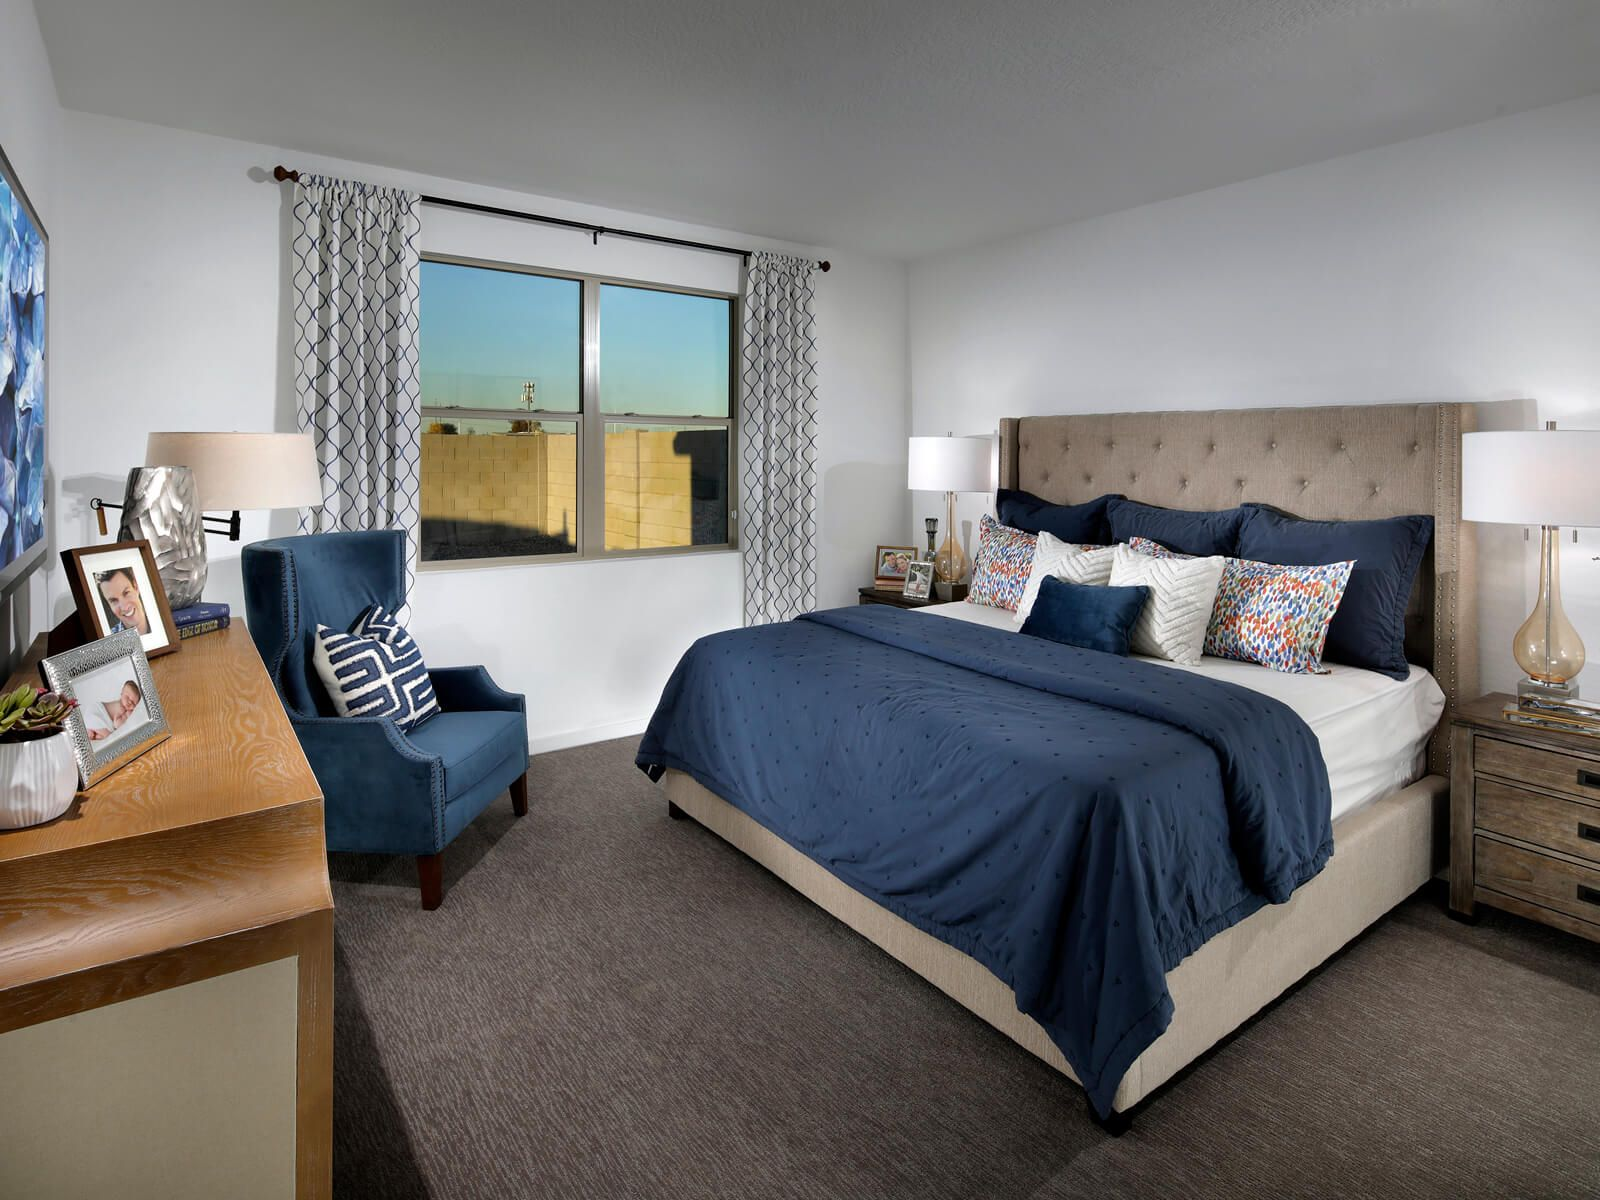 Bedroom featured in the Leslie - 3 Car Garage Included By Meritage Homes in Phoenix-Mesa, AZ